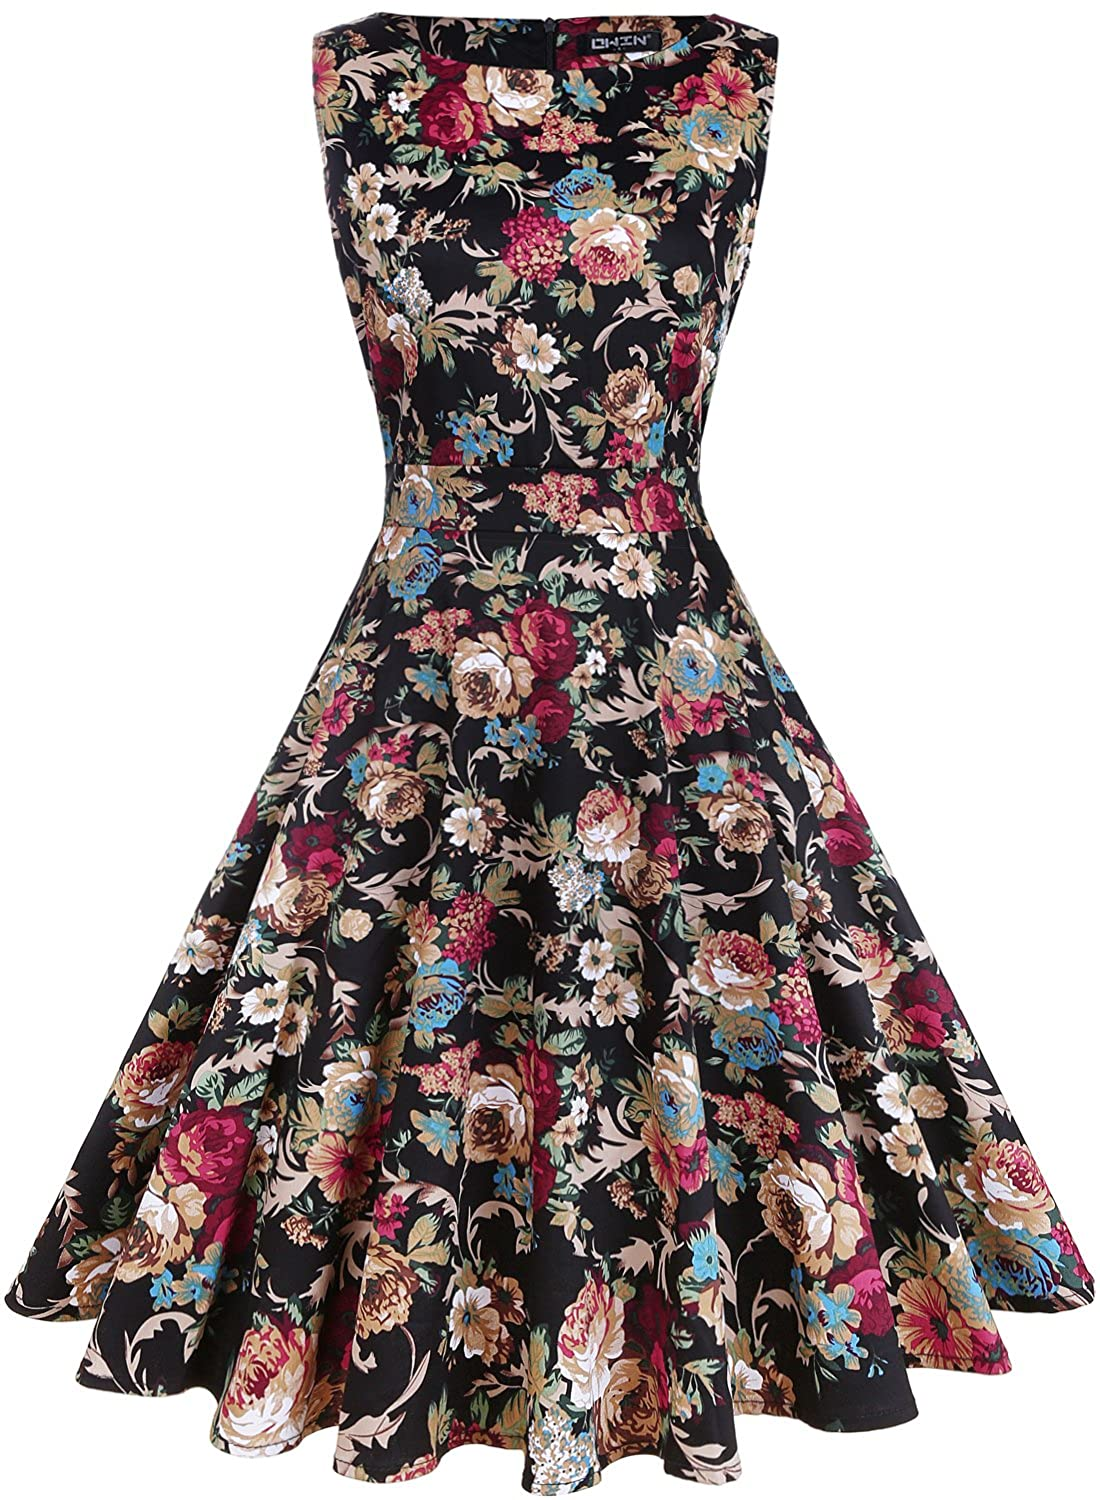 2263f5ce3df353 OWIN Women Vintage 1950 s Floral Spring Rockabilly Swing Prom Party  Cocktail Dress  Amazon.ca  Clothing   Accessories